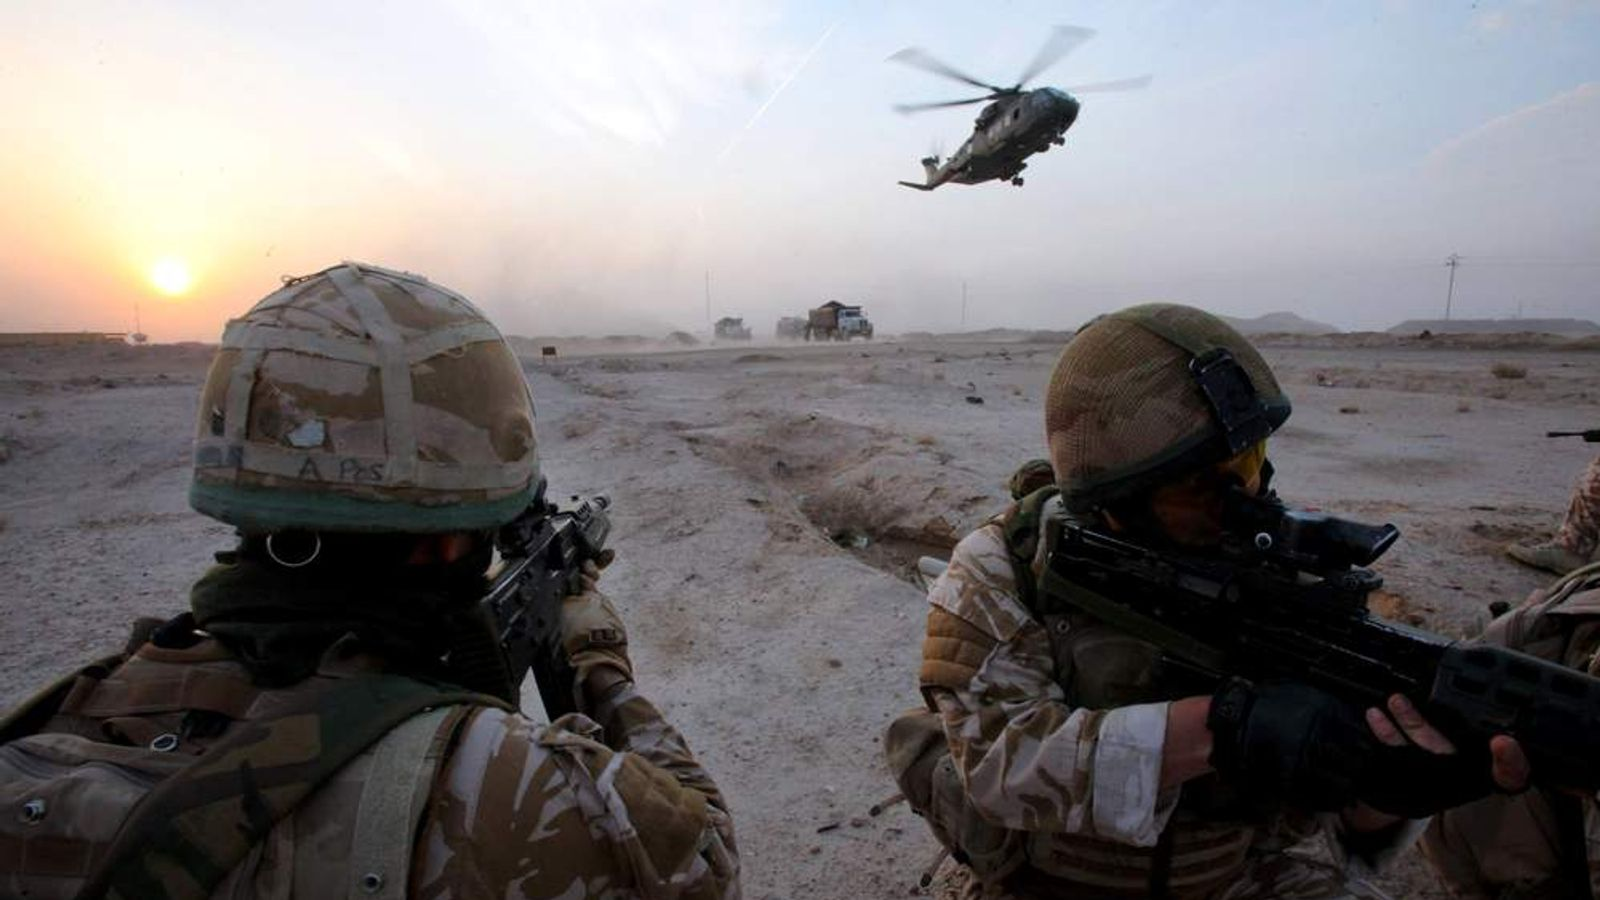 countries involved on the iraq war Because kuwait was drilling oil in an area that hussein believed belonged to iraq why did the us get involved in the iraq war iraq invaded kuwait so the oil rich countries were nervous that iraq would invade them.